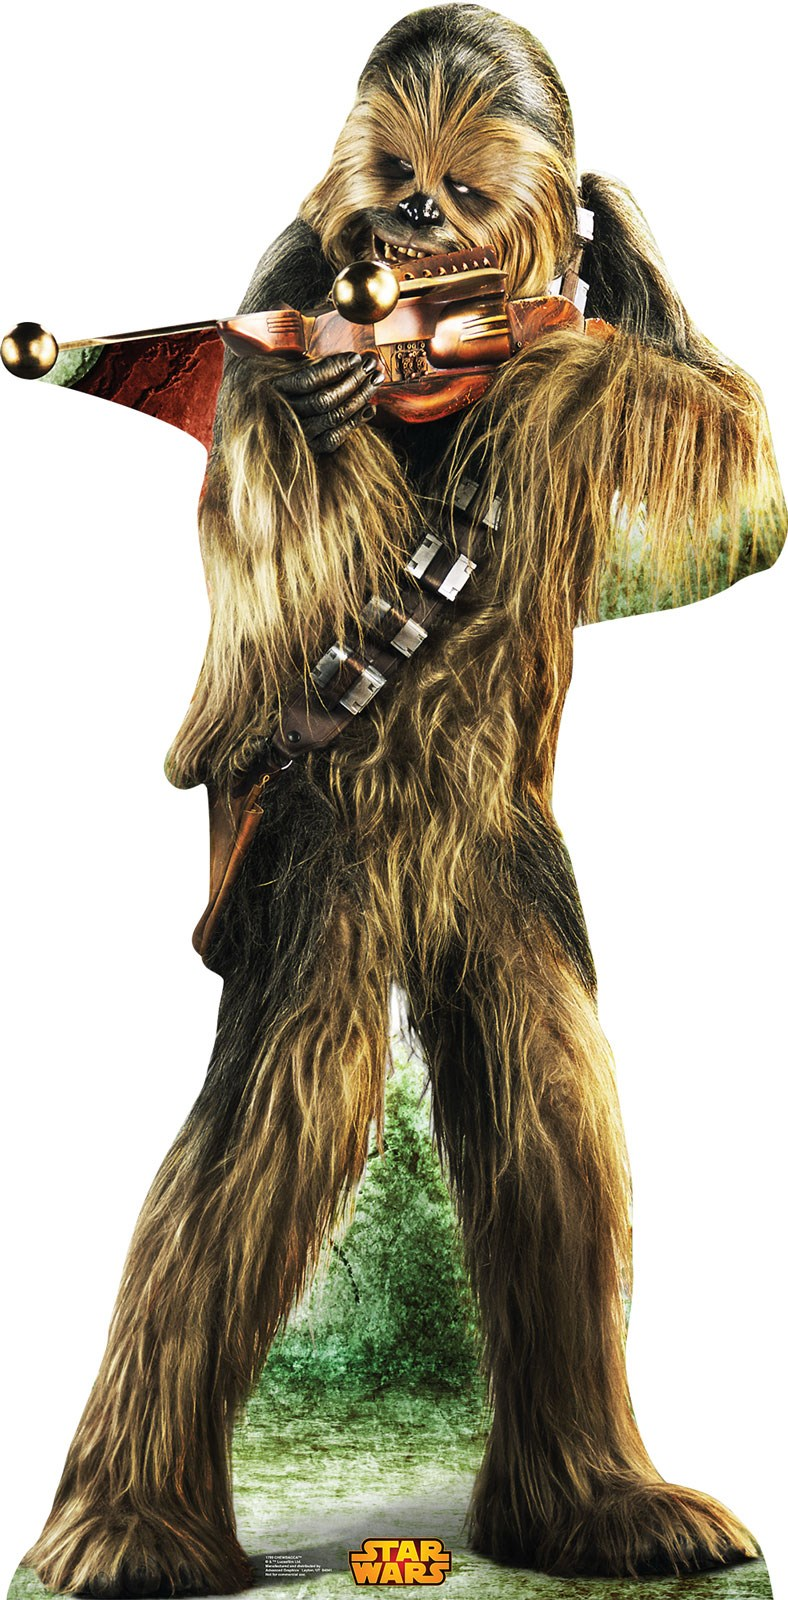 star wars chewbacca standup 6 39 tall. Black Bedroom Furniture Sets. Home Design Ideas